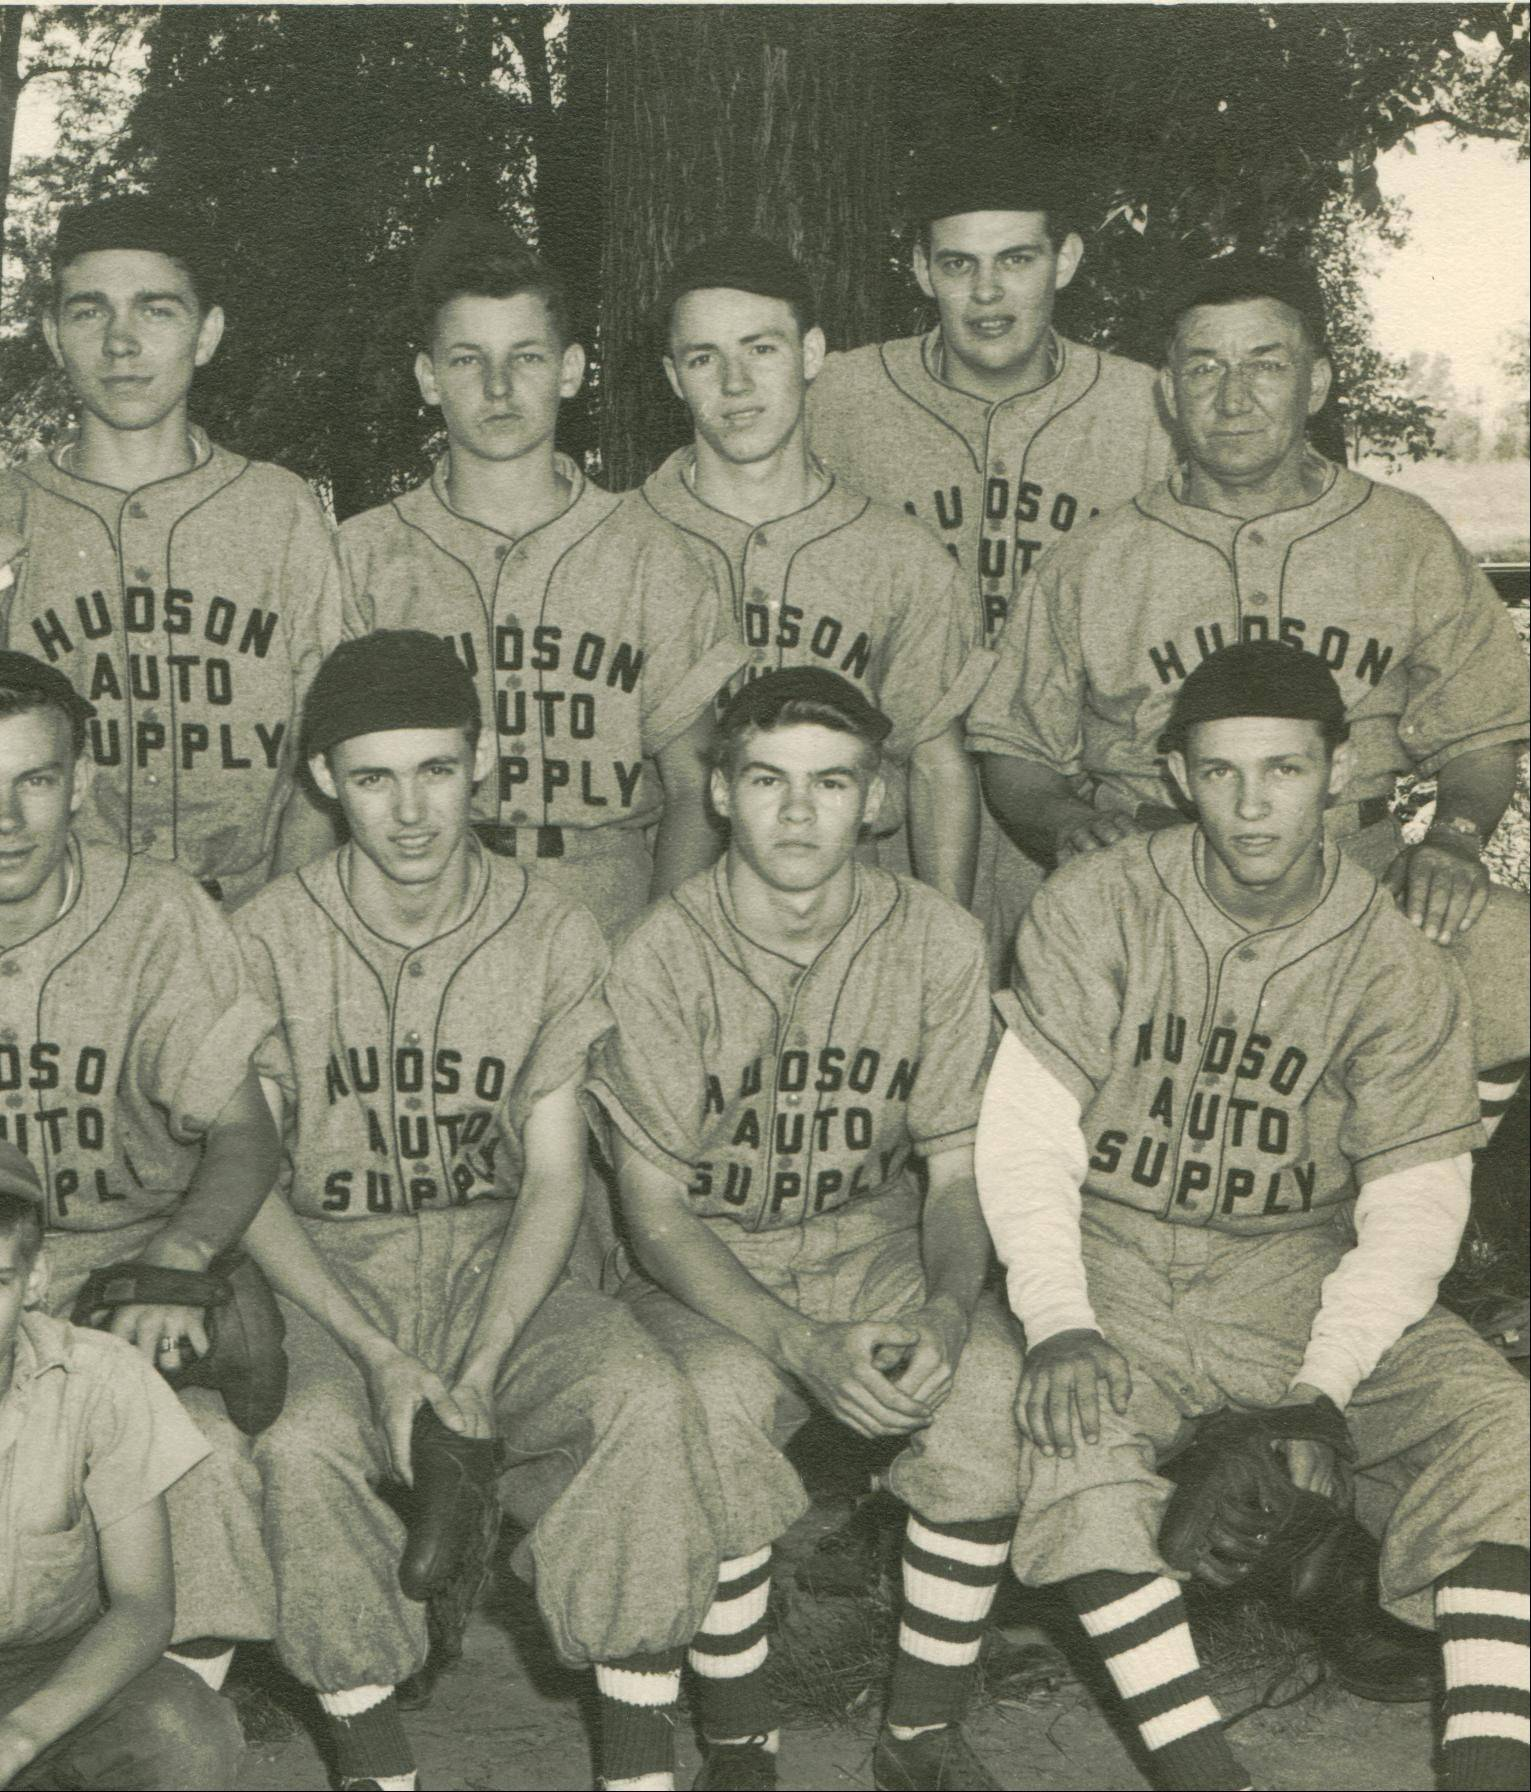 Ken Black, second from right in the bottom row, played on this team when he was 15 years old.